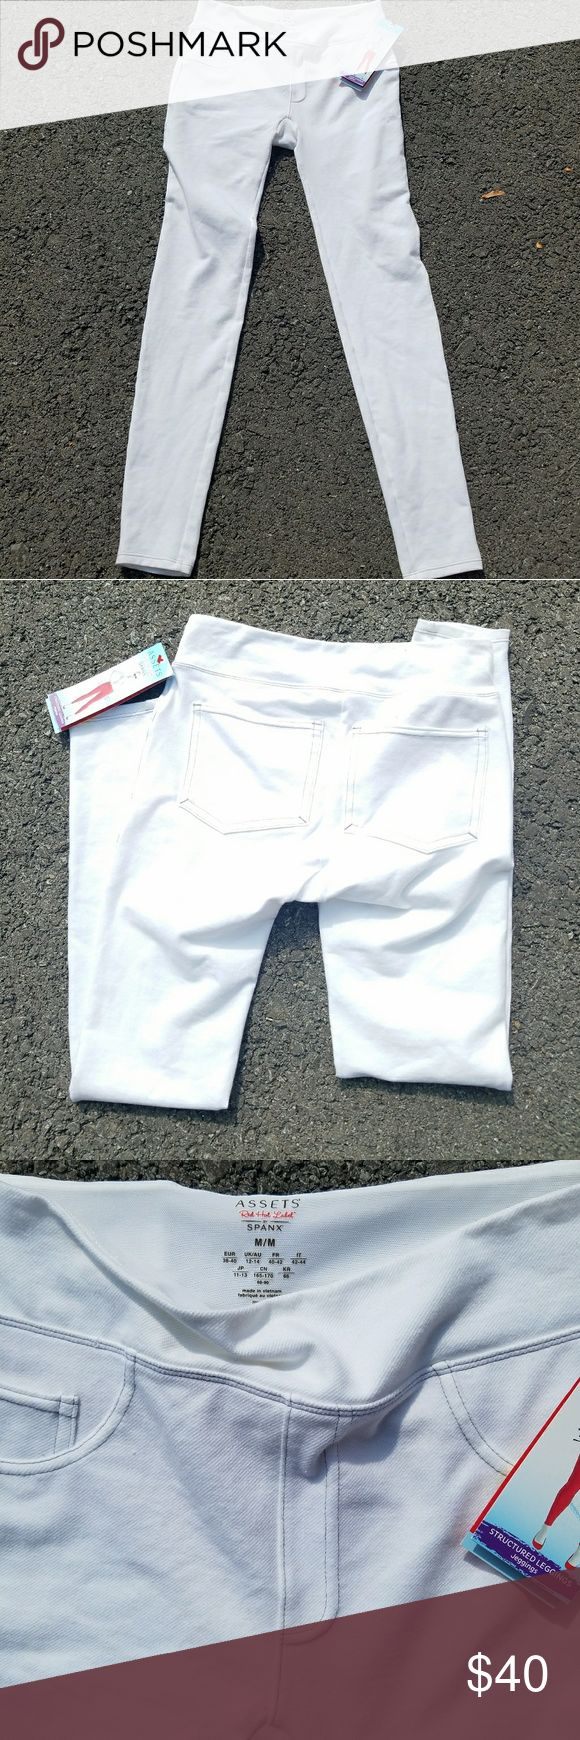 NWT SPANX White Structured Jeggings Size Medium New With Tags. White jeggings by Spanx Womans Size Medium Red Hot Label Structured Leggings SPANX Pants Leggings